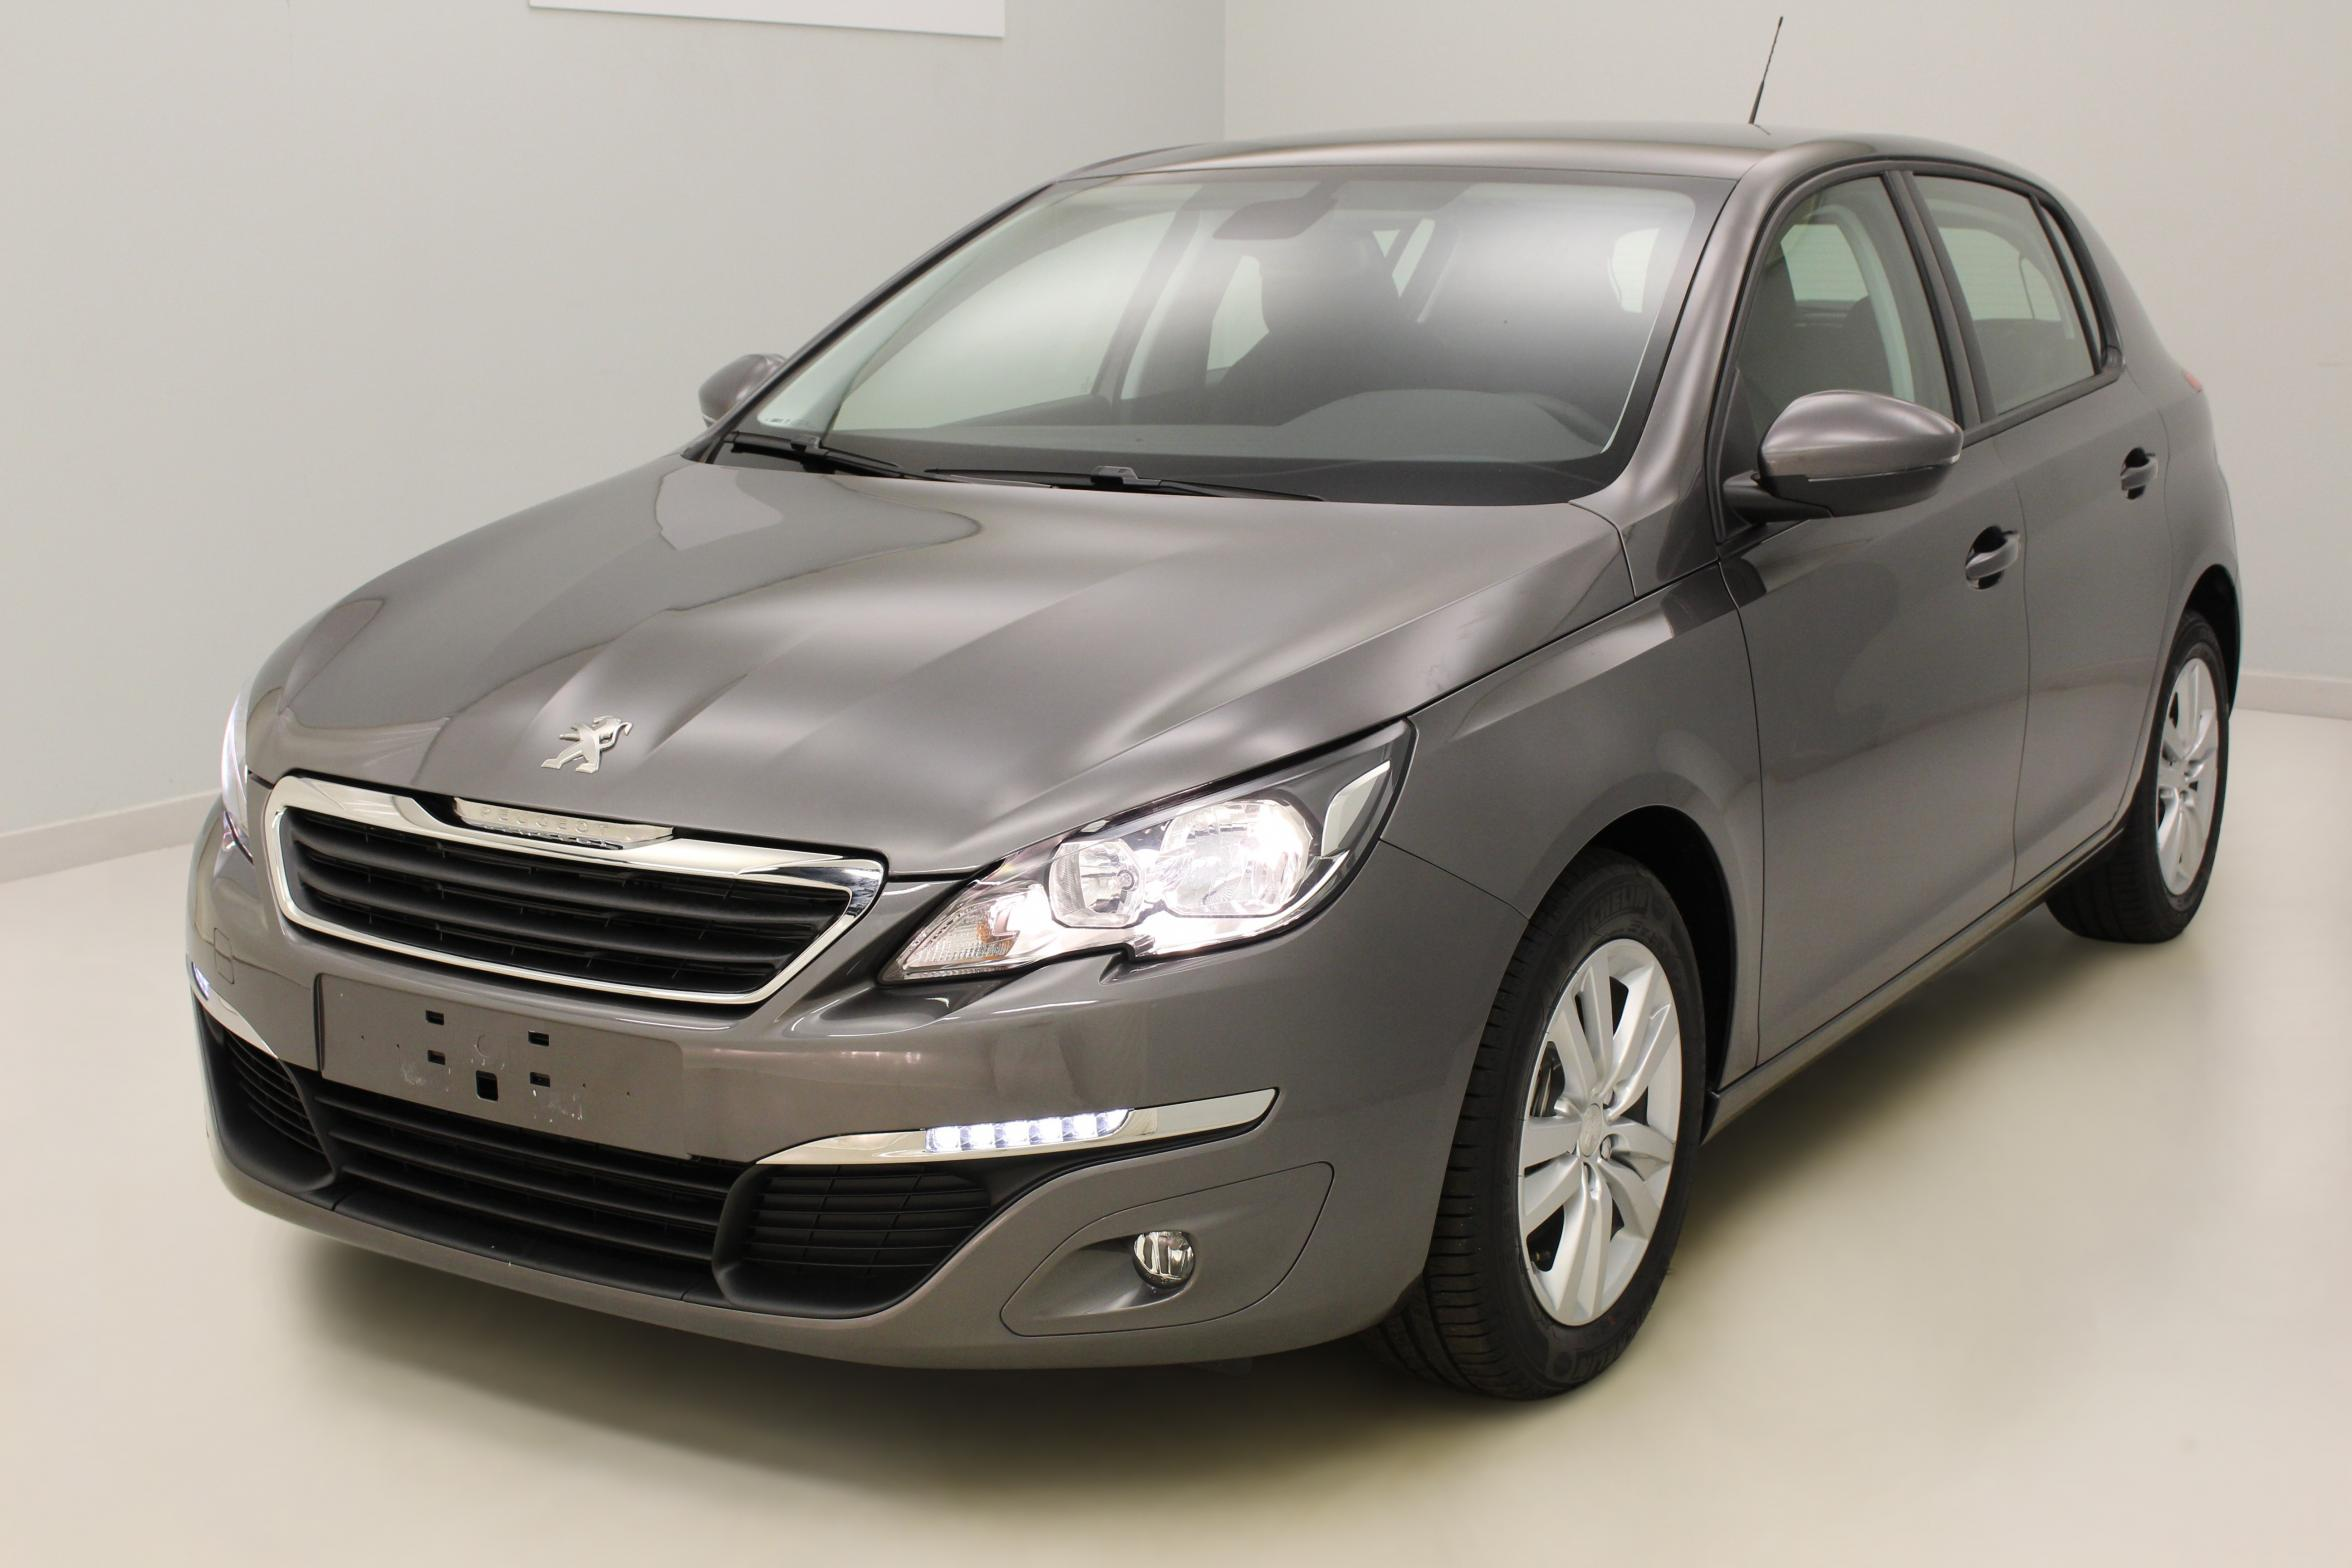 PEUGEOT 308 1.6 BlueHDi 120ch S&S BVM6 Active Gris Platinium + Navigation avec options